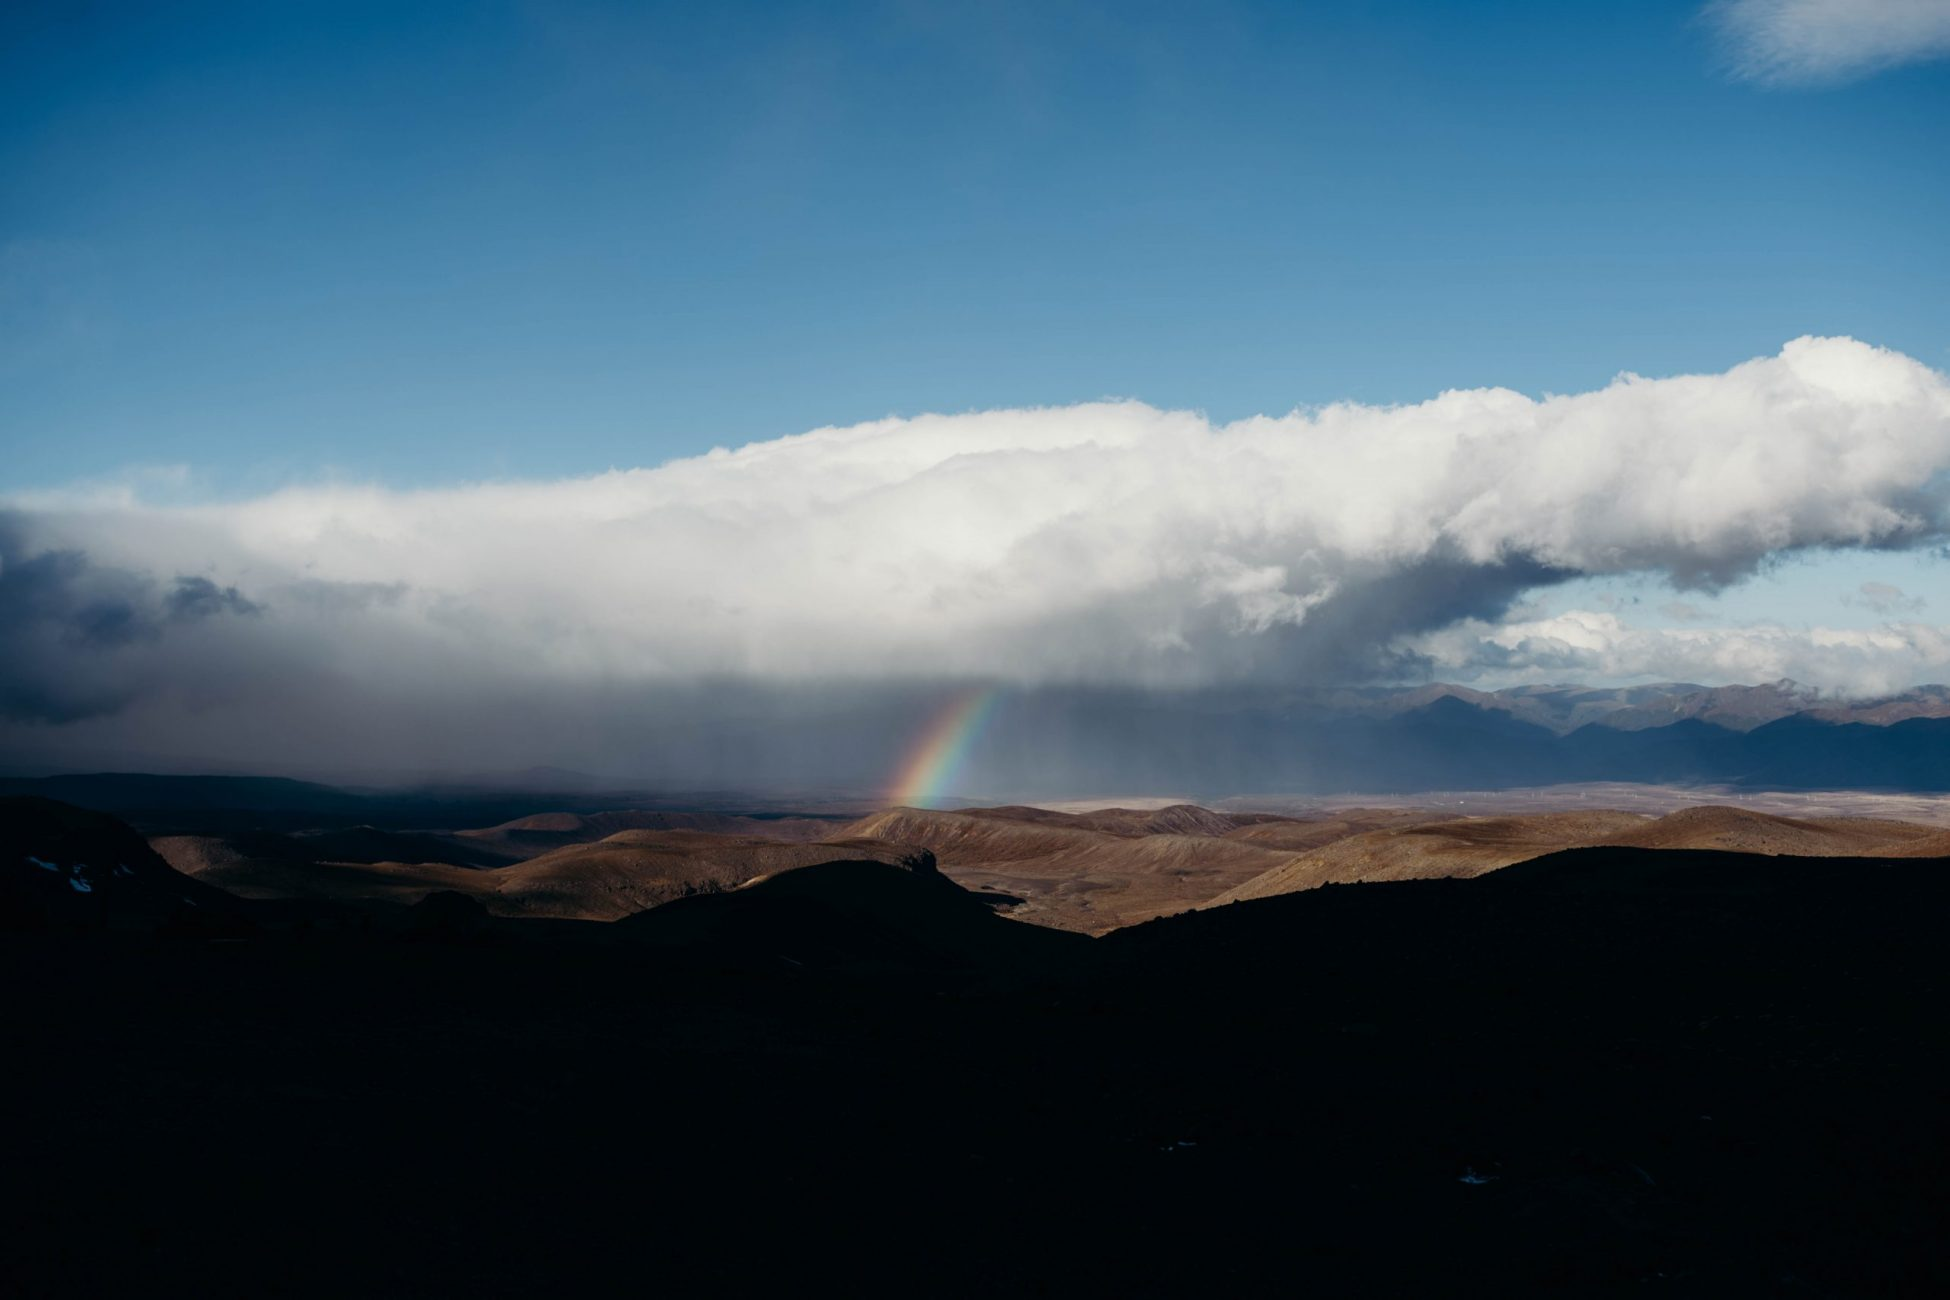 Rainbow over mountains in New Zealand